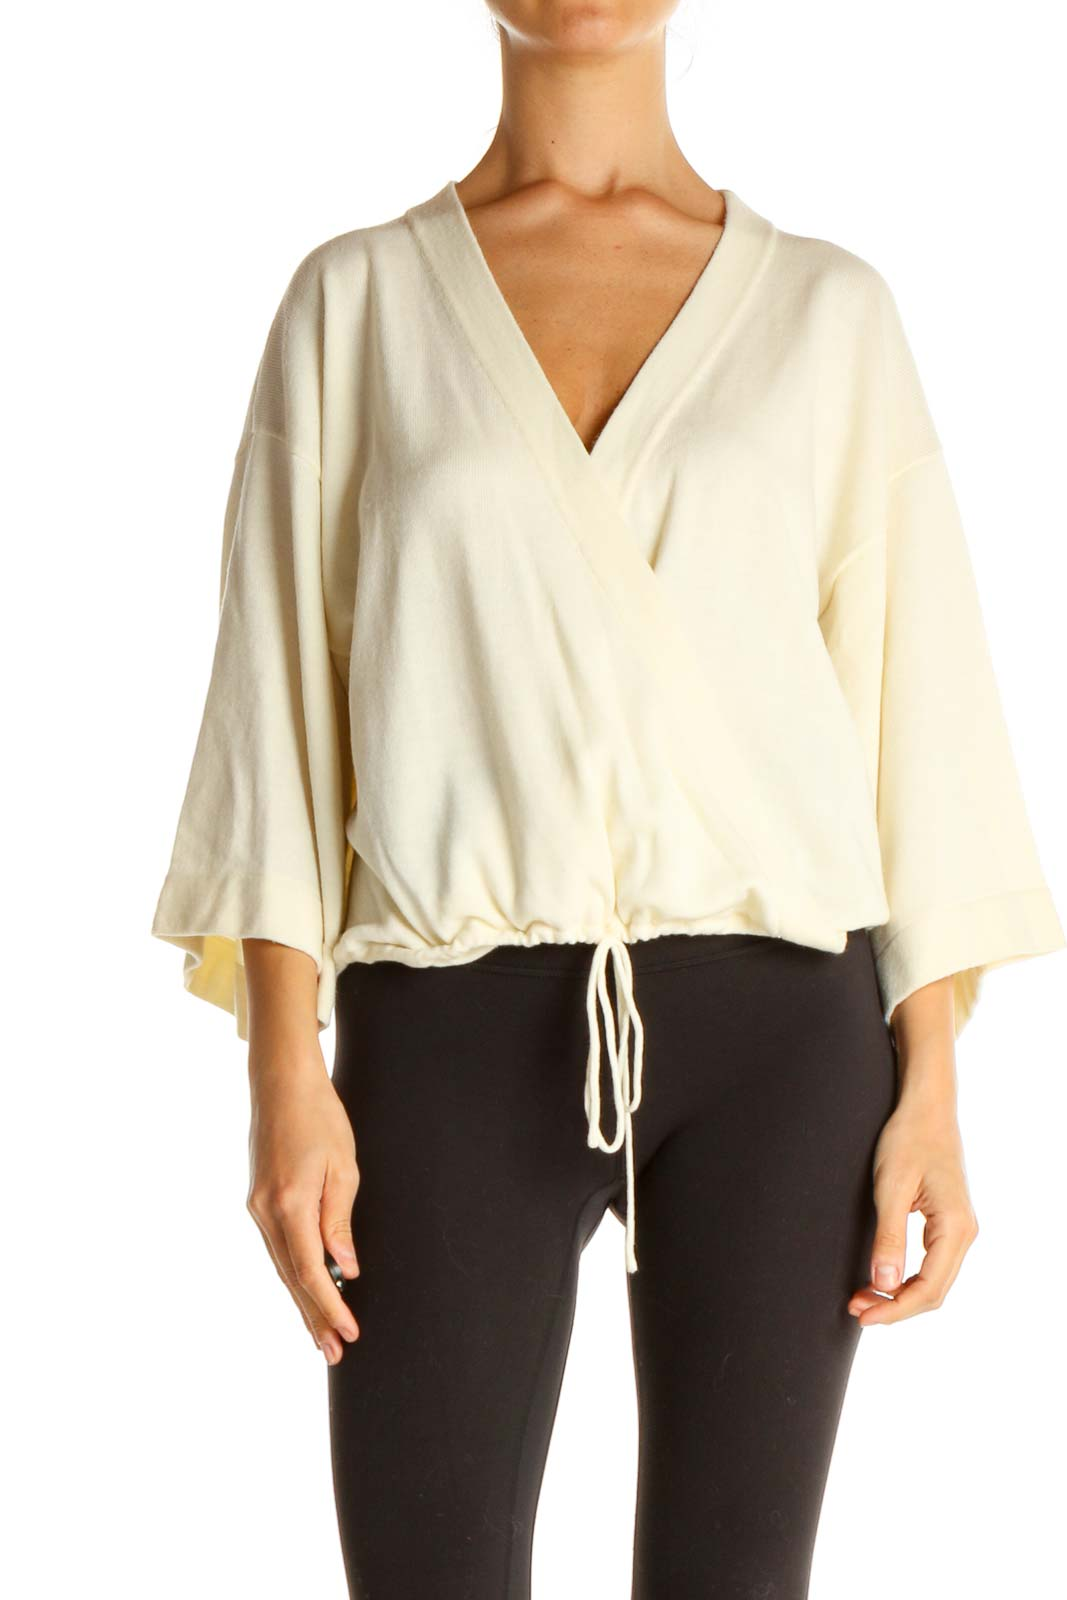 Beige Solid All Day Wear Blouse Front